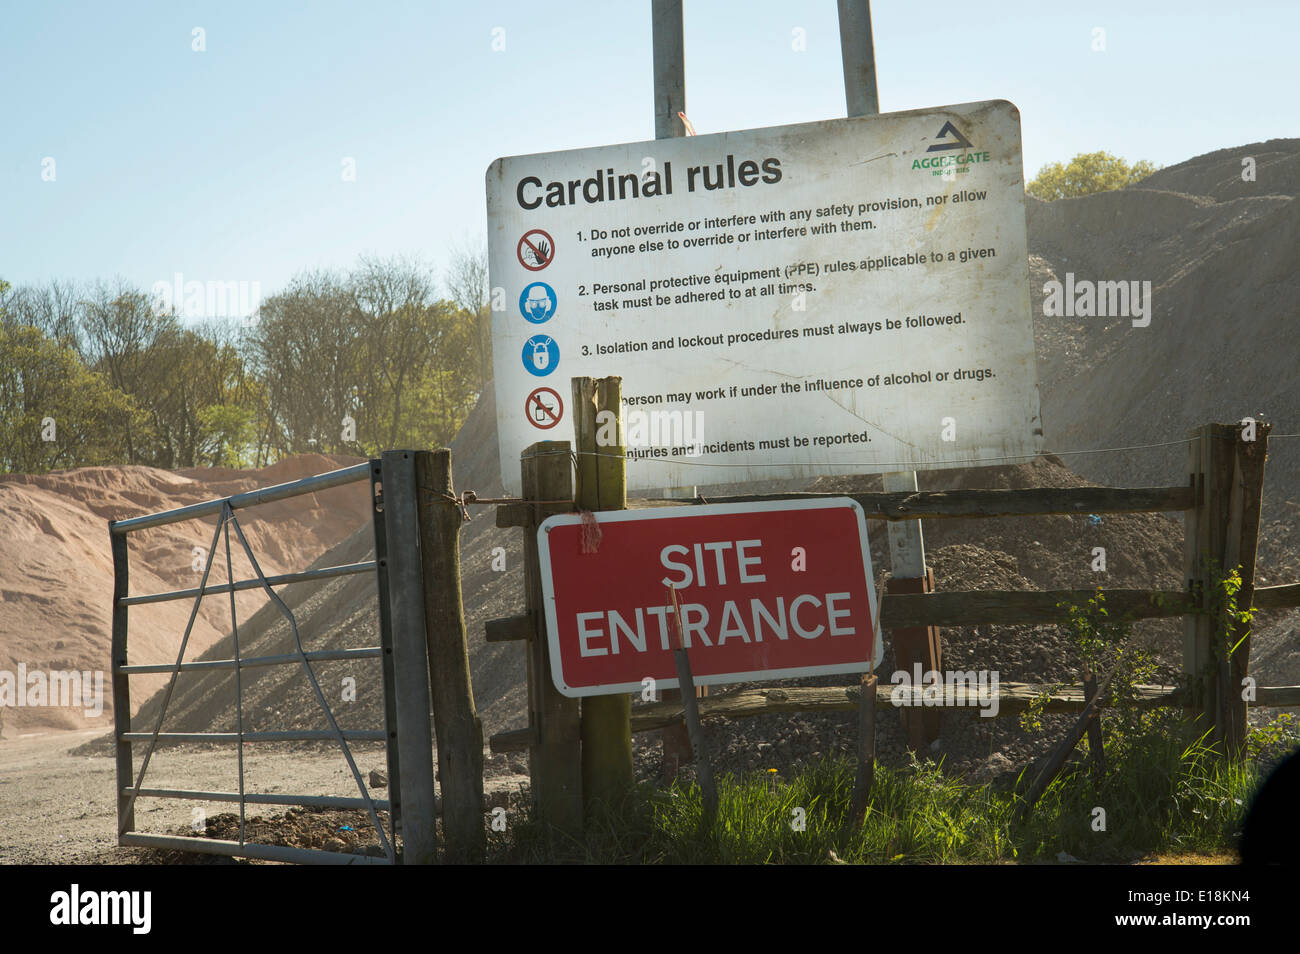 Cardinal rules sign at the entrance of an industrial depot - Stock Image